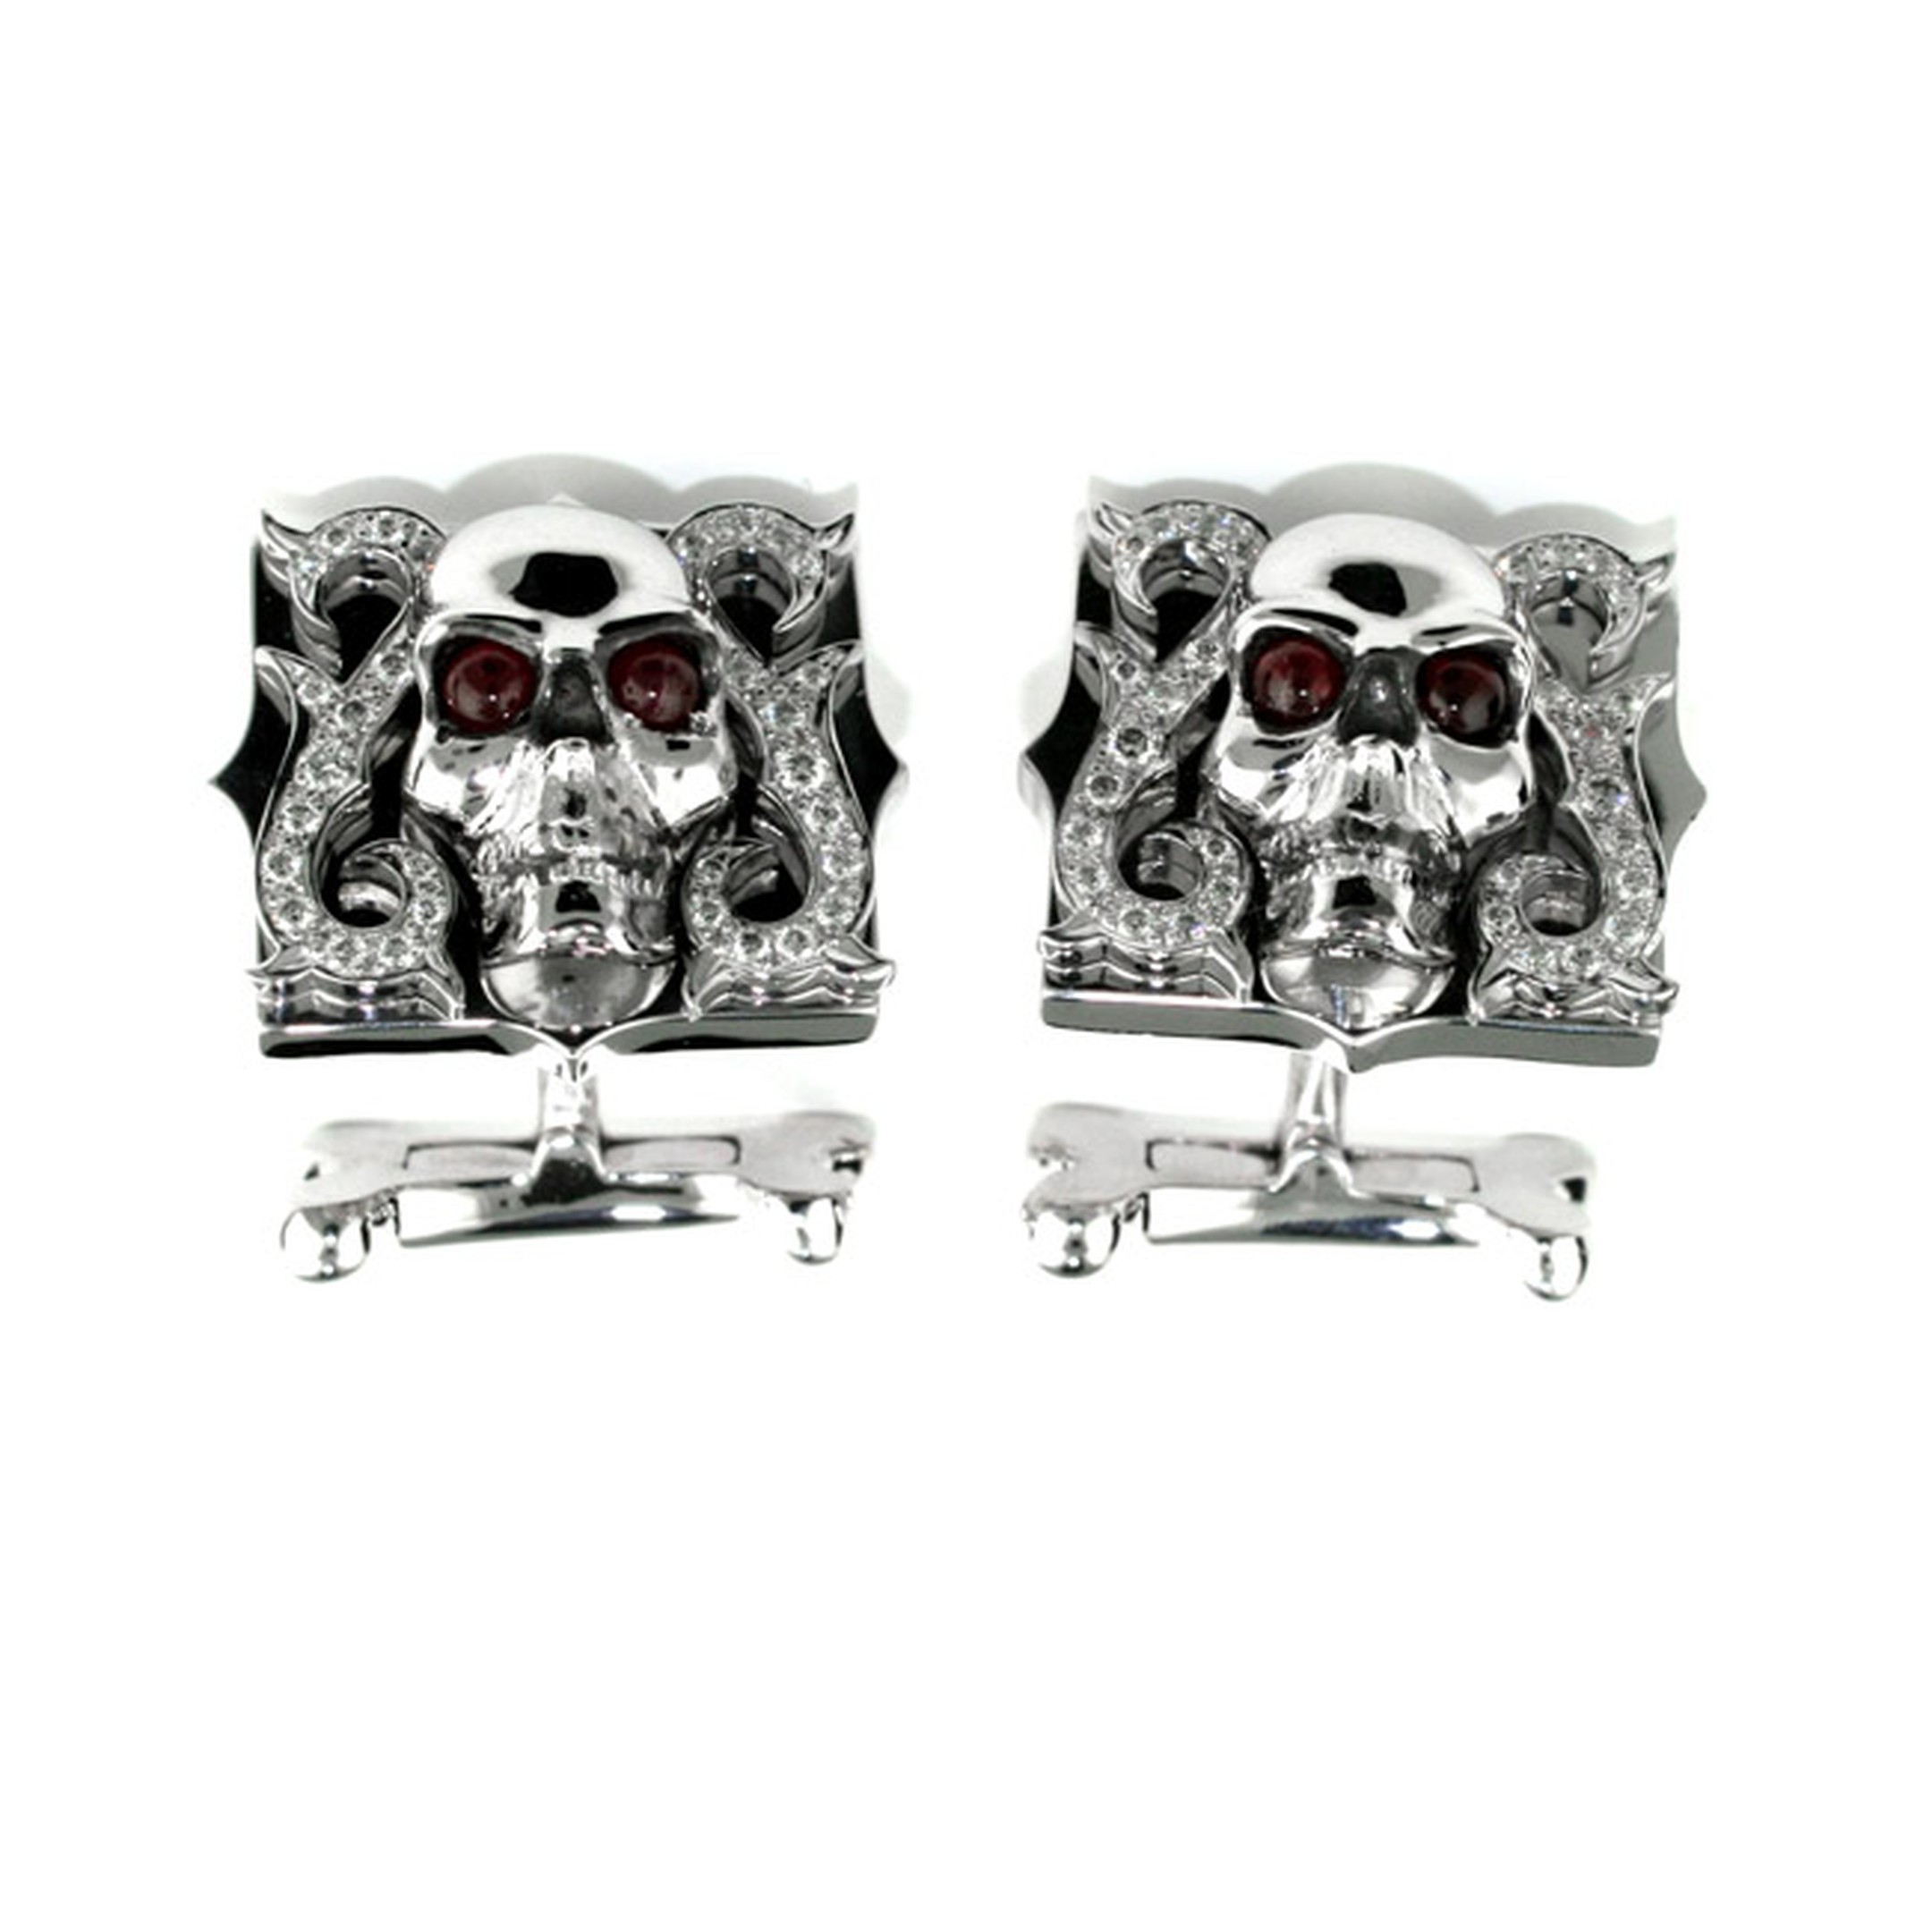 Stephen-Webster-Skull-Cufflinks-Main